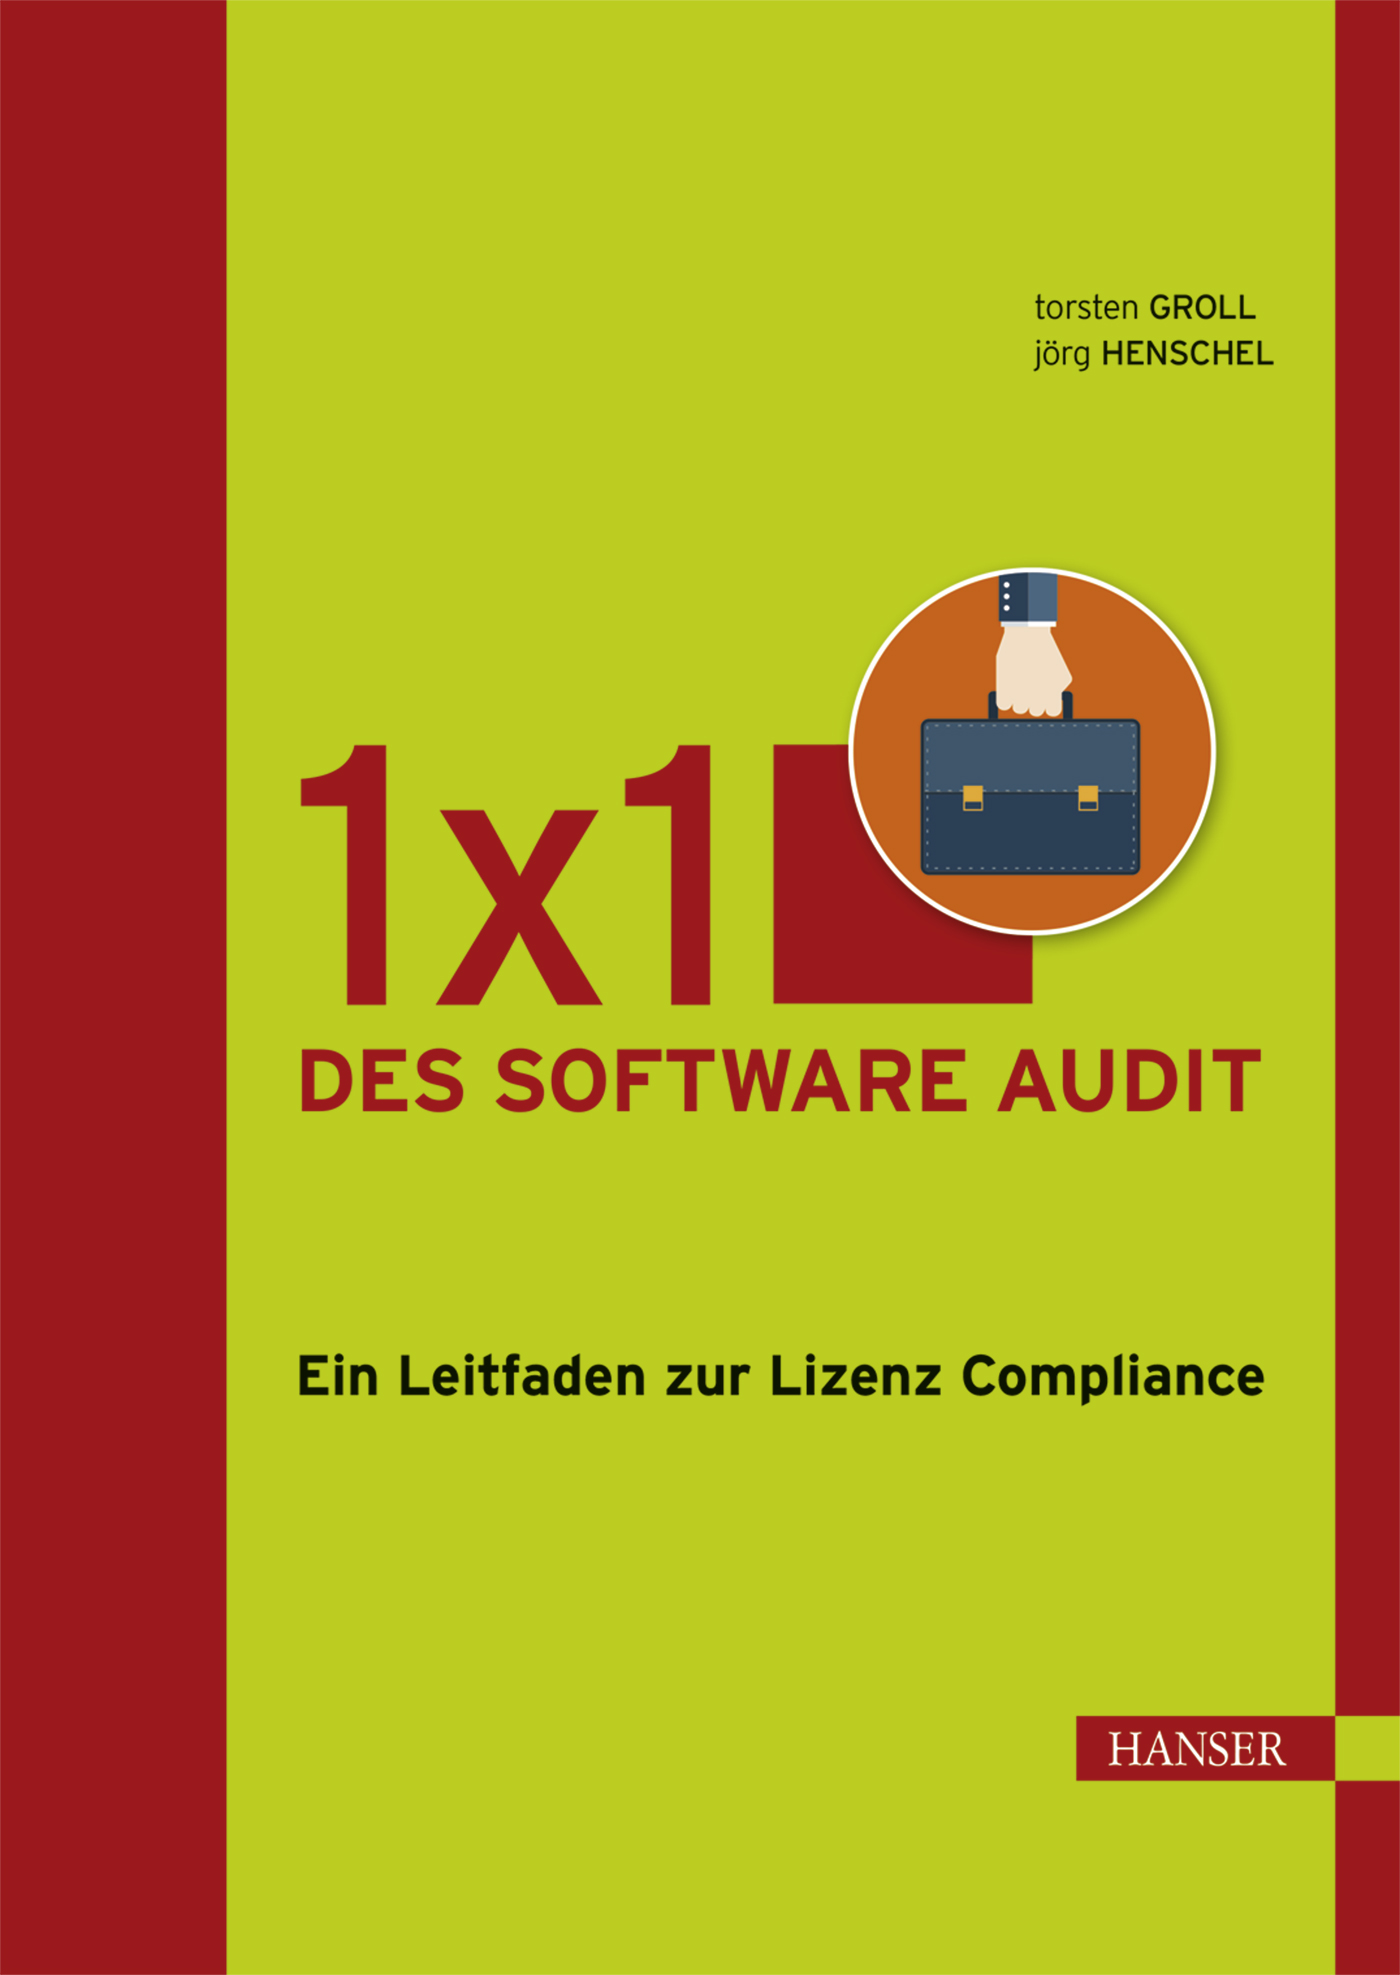 Groll, Henschel, 1x1 des Software Audit, 978-3-446-43945-0